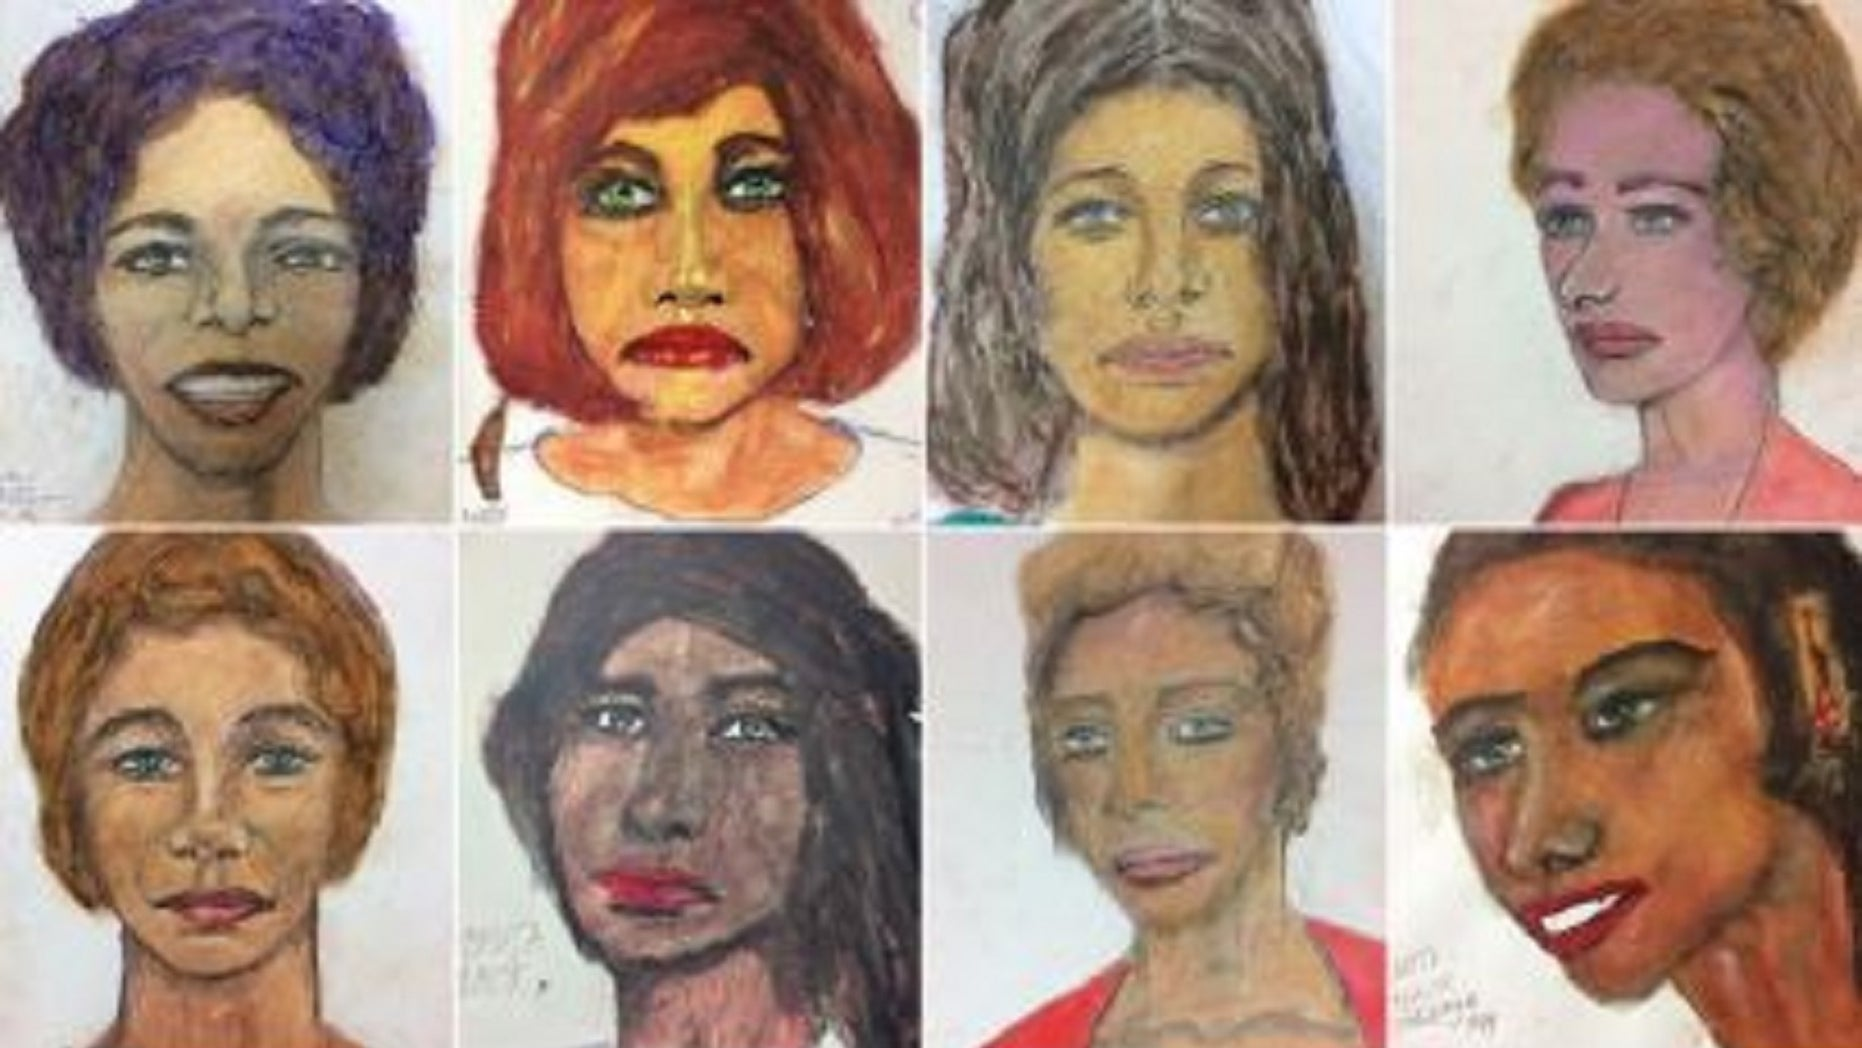 Serial Killer Samuel Little has made portraits of 16 of his victims who remain unknown.